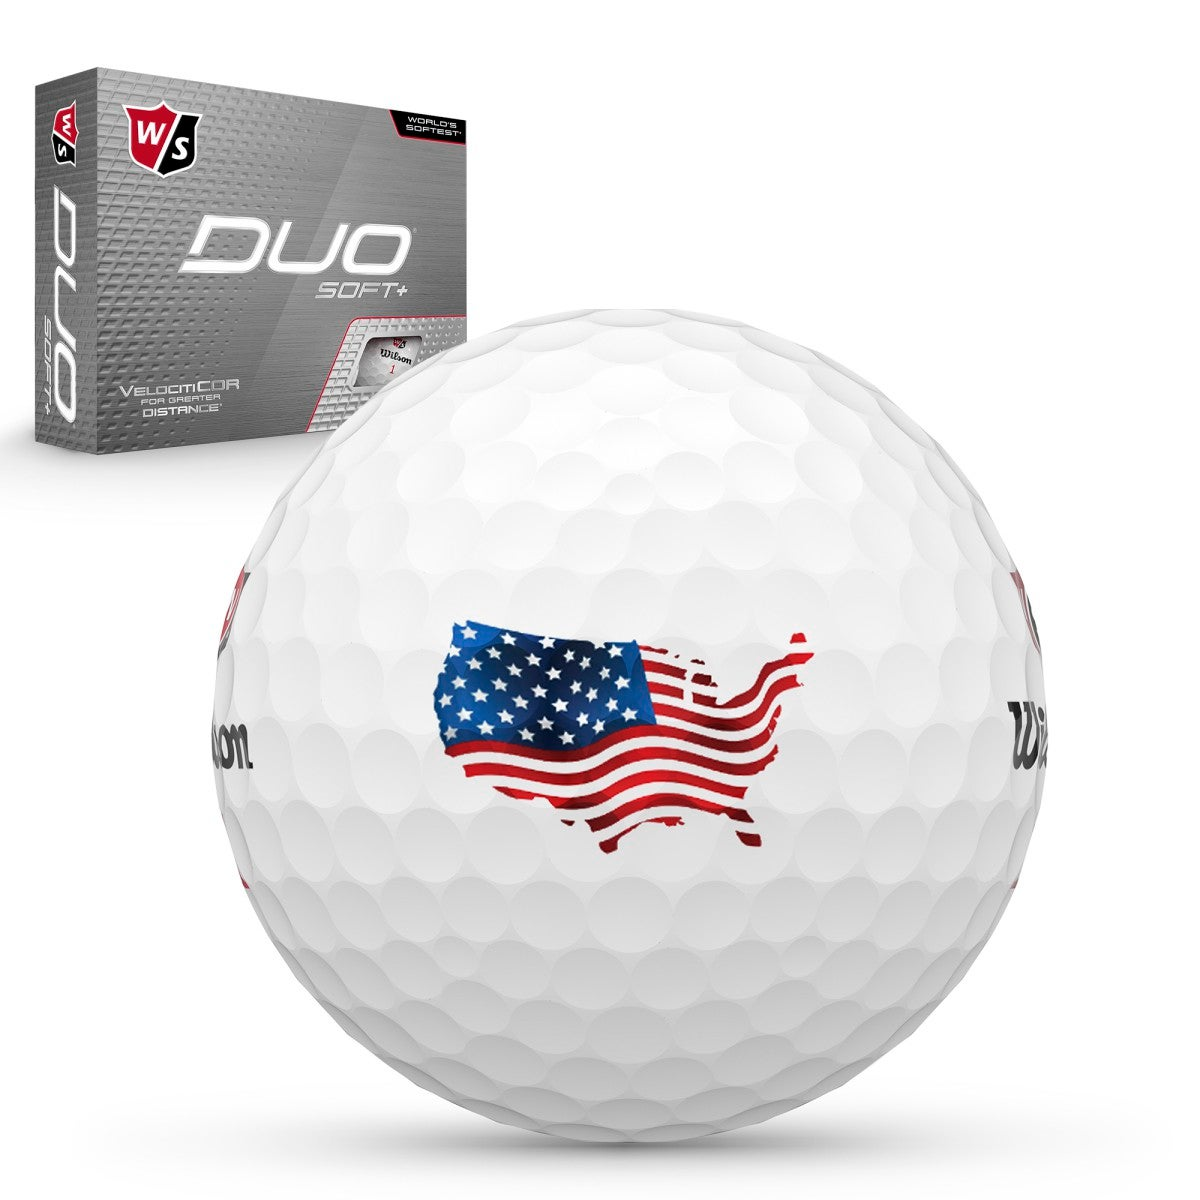 DUO Soft+ USA Golf Balls